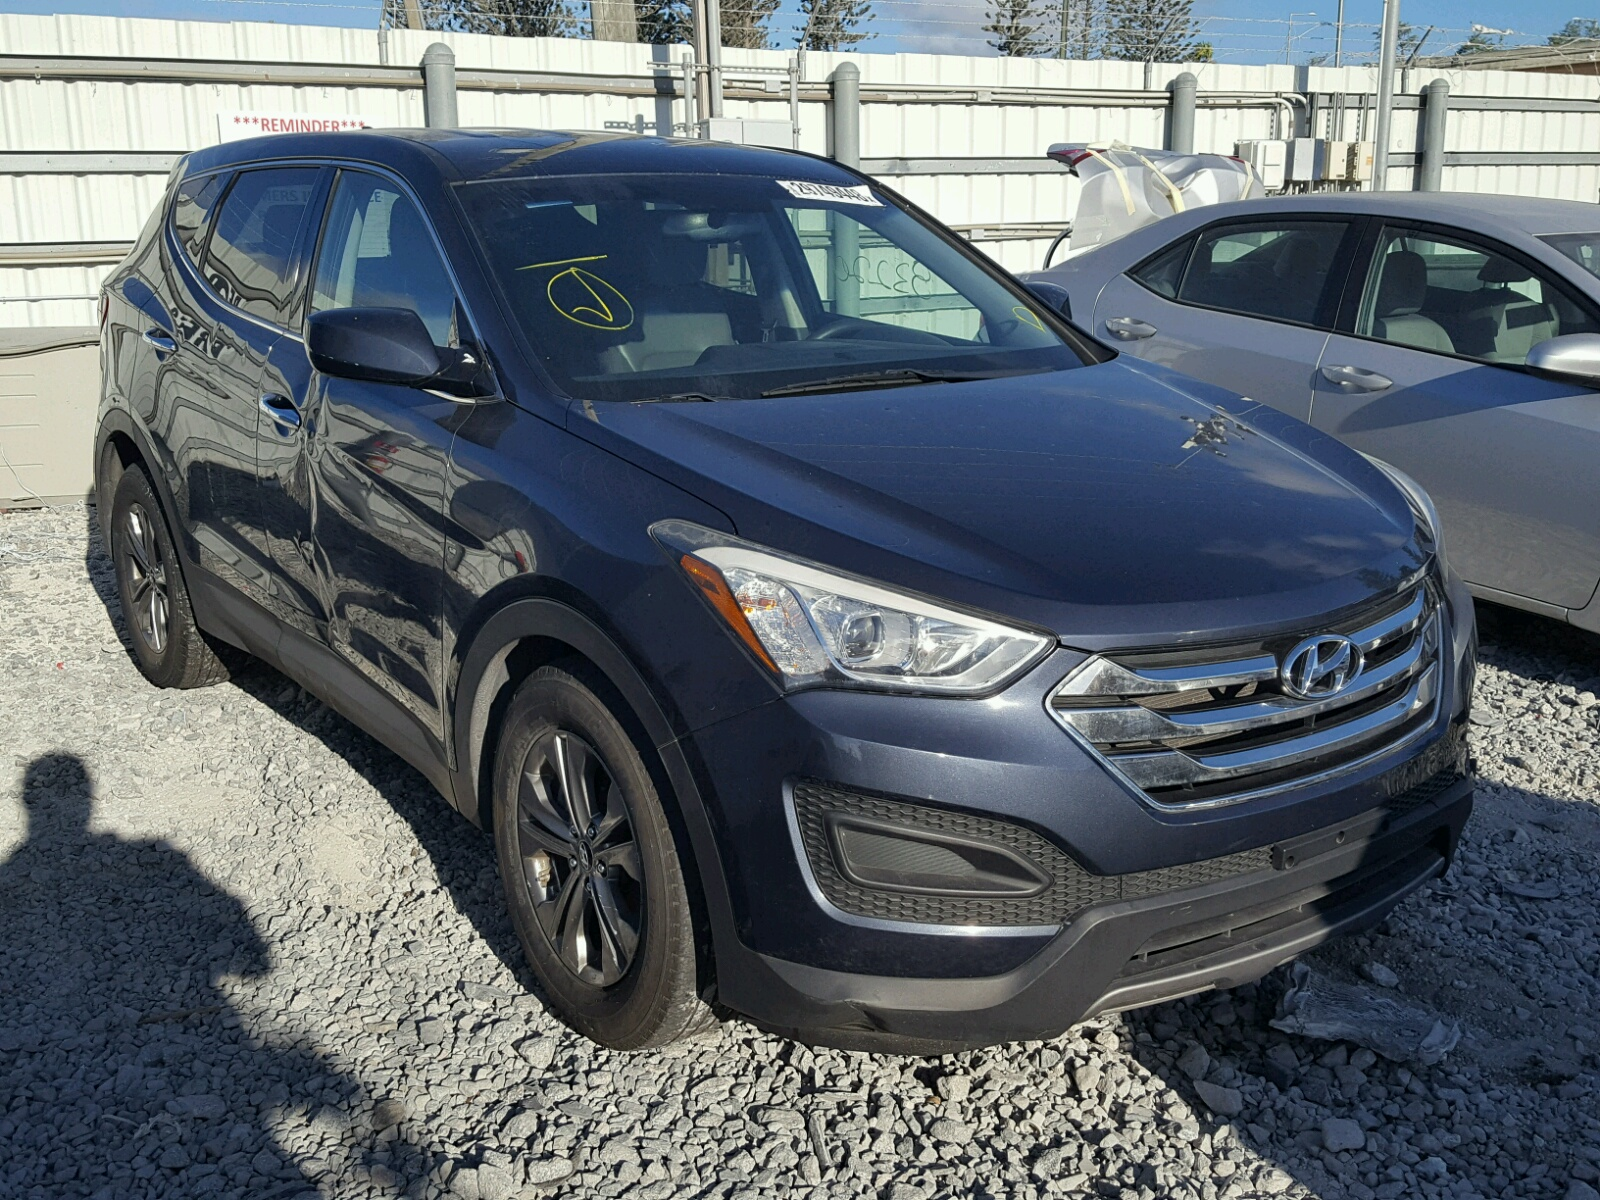 auctions hyundai in en sale auto of on black view online indianapolis carfinder copart se cert lot elantra salvage left title